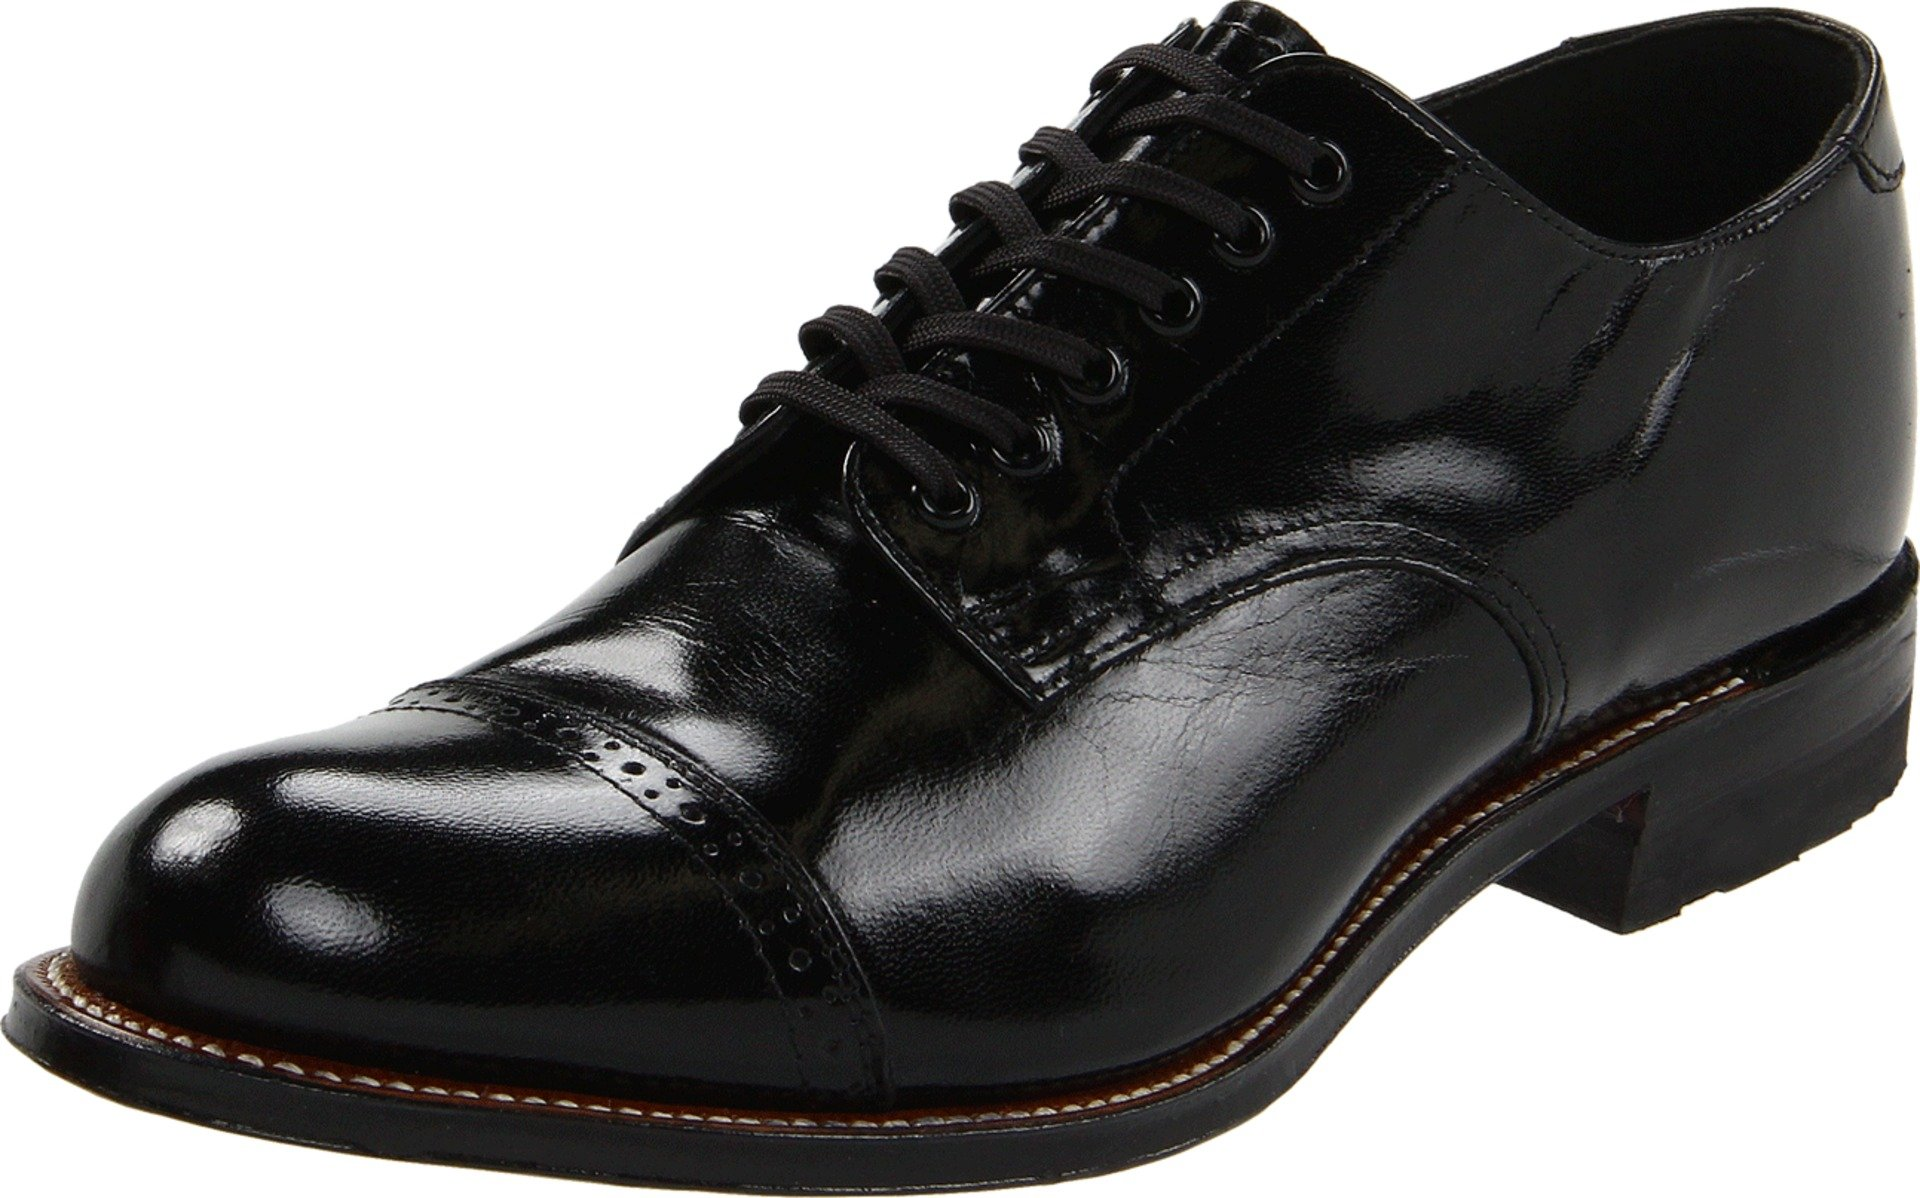 Stacy Adams Men's Madison (Cap Toe) Black Oxford 9.5 E - Wide